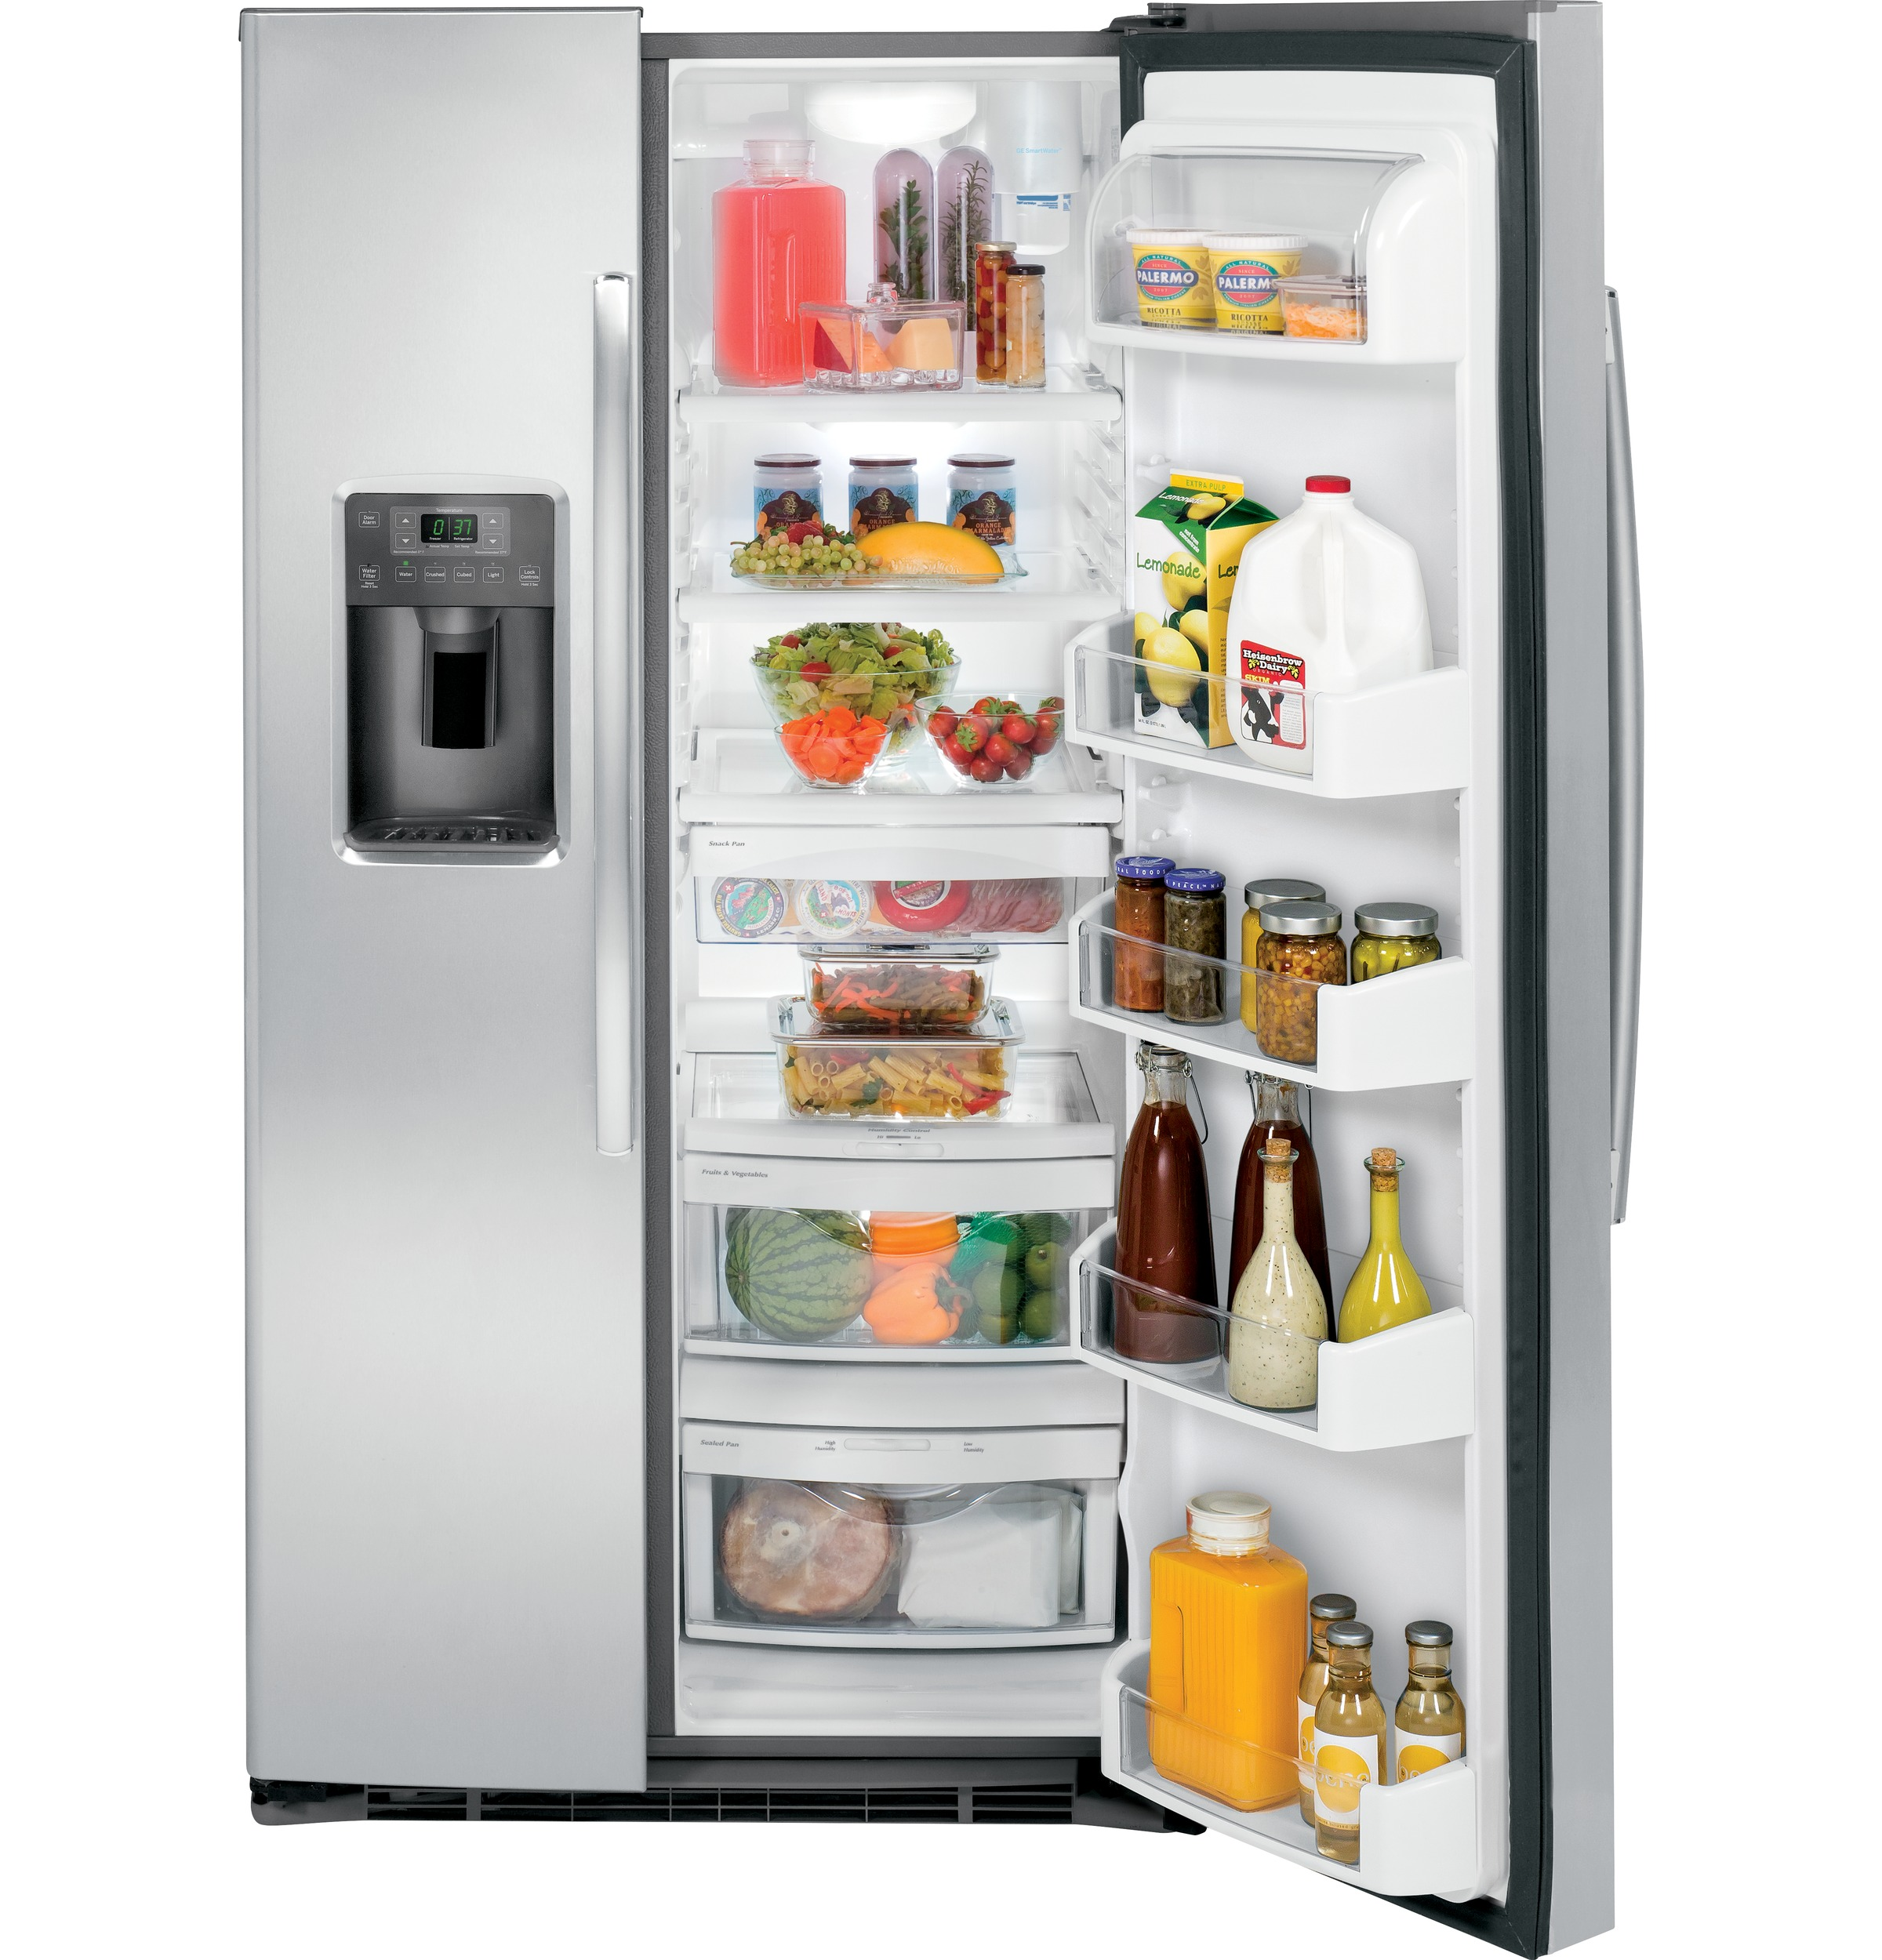 Side by side refrigerator no water dispenser - Product Image Product Image